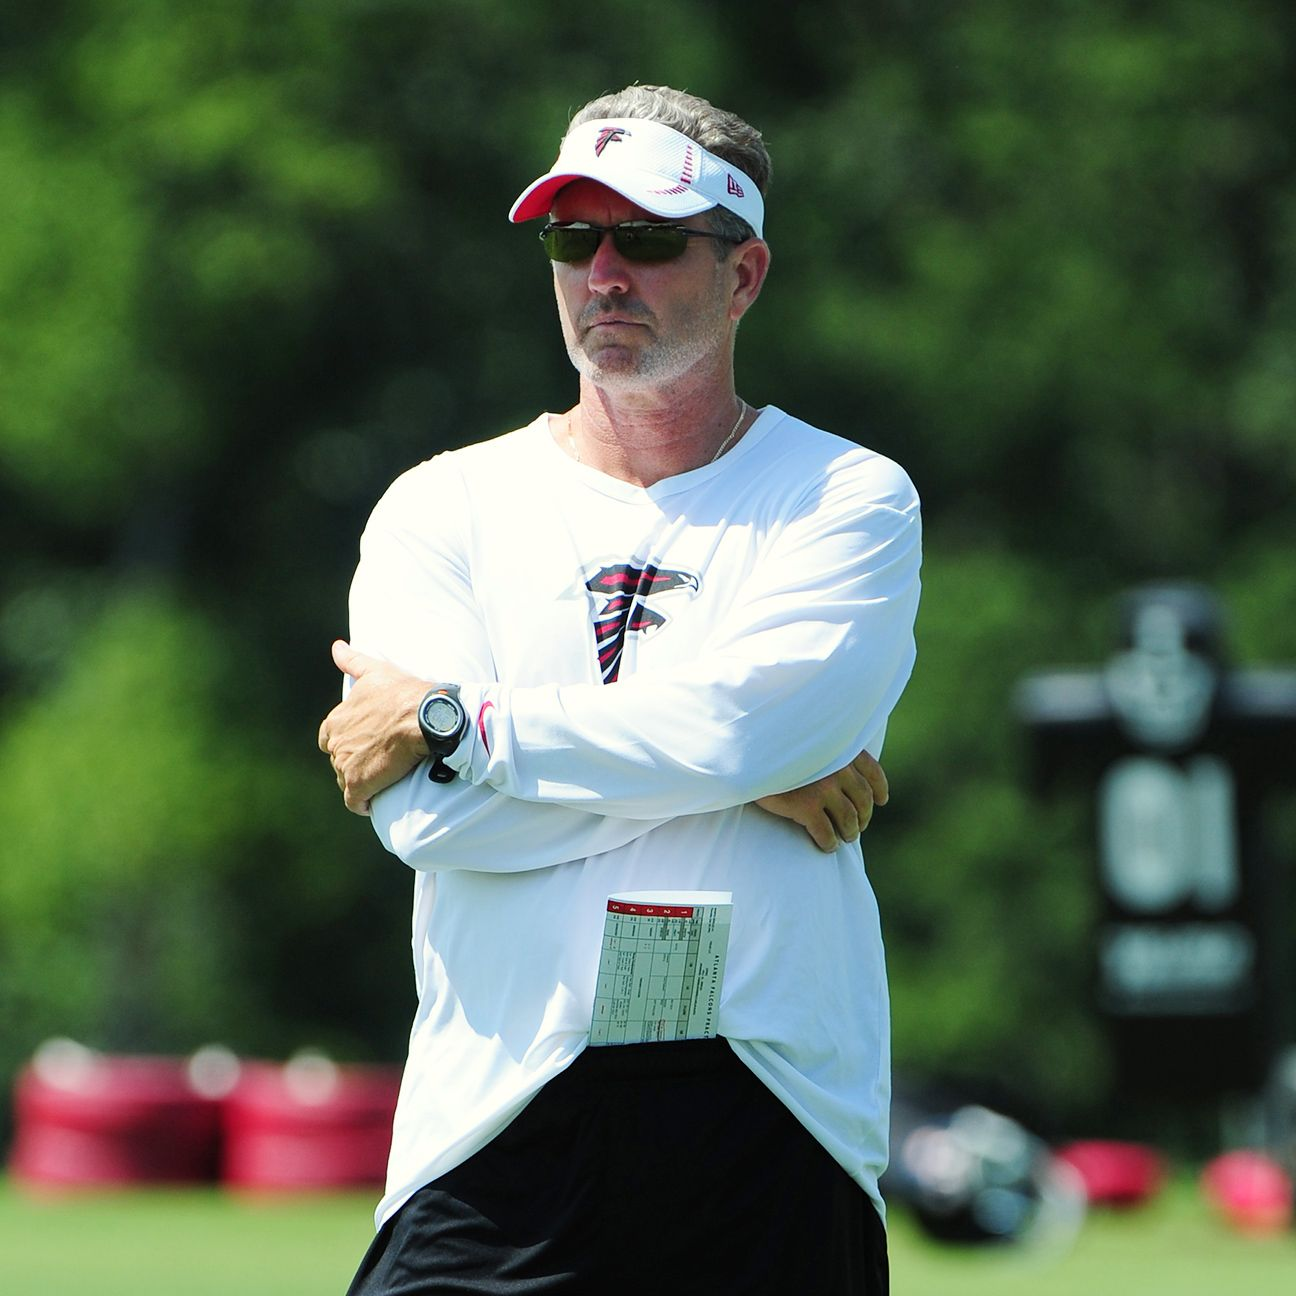 San Diego Chargers Future Opponents: How Dirk Koetter's Past Could Impact Tampa Bay Buccaneers